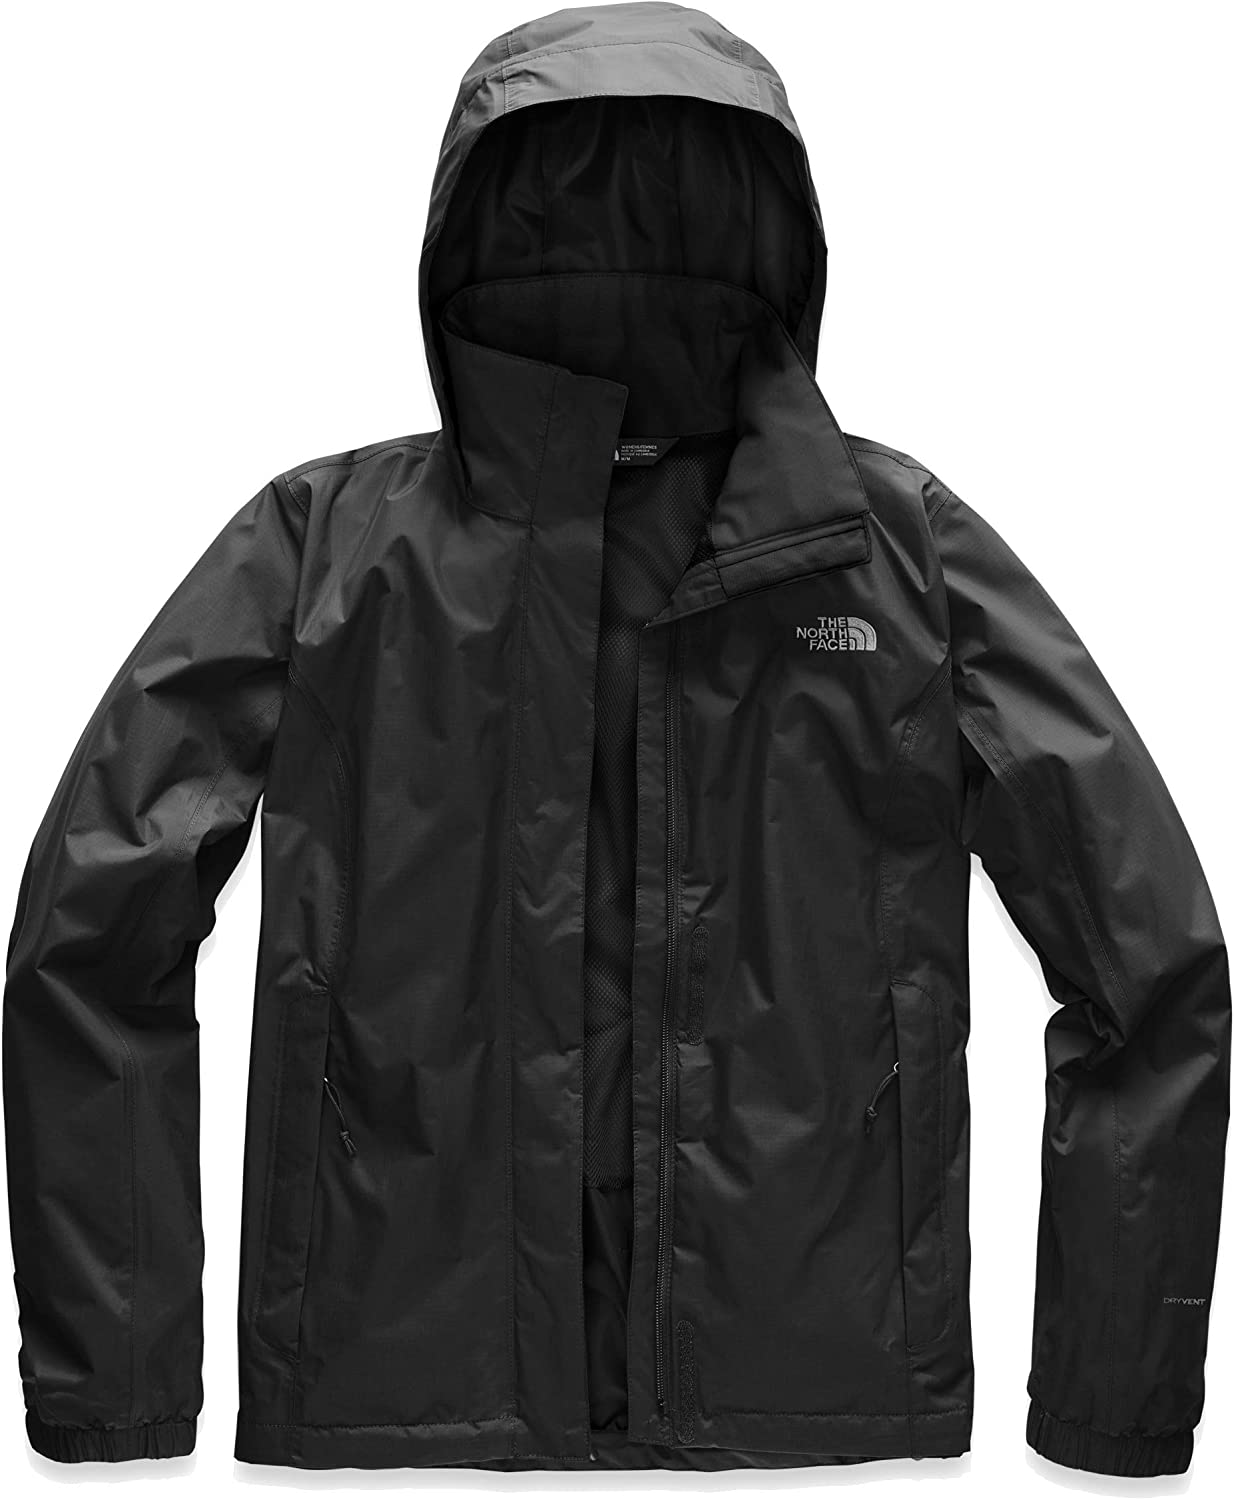 The North Face Women's Resolve 2 DWR Waterproof Hooded Rain Jacket: Clothing